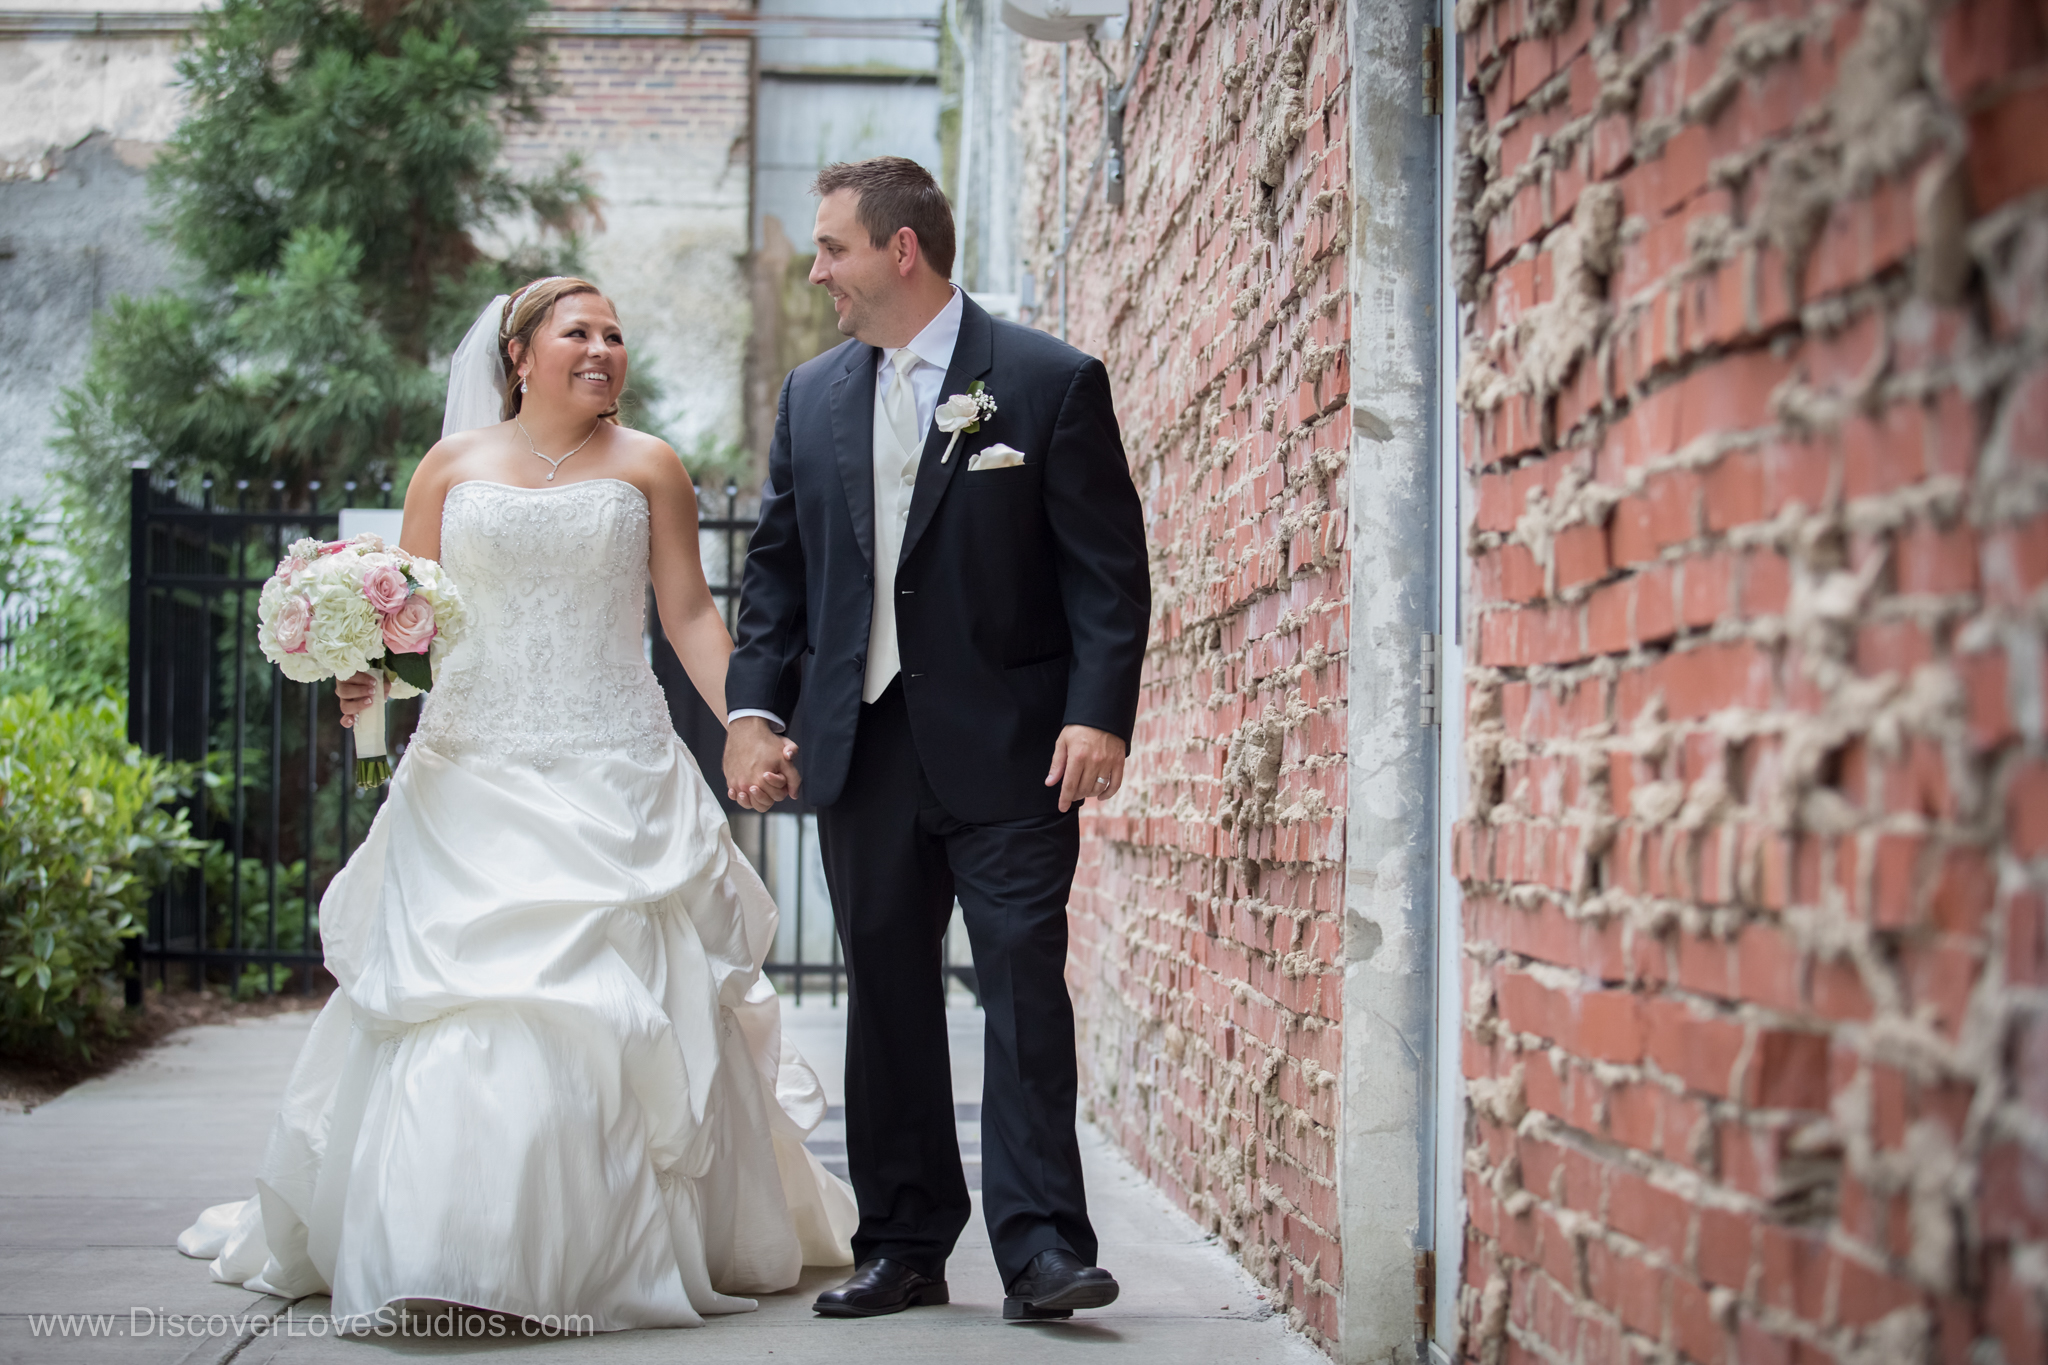 Bride and groom walking hand in hand by a brick wall in Uptown Charlotte.